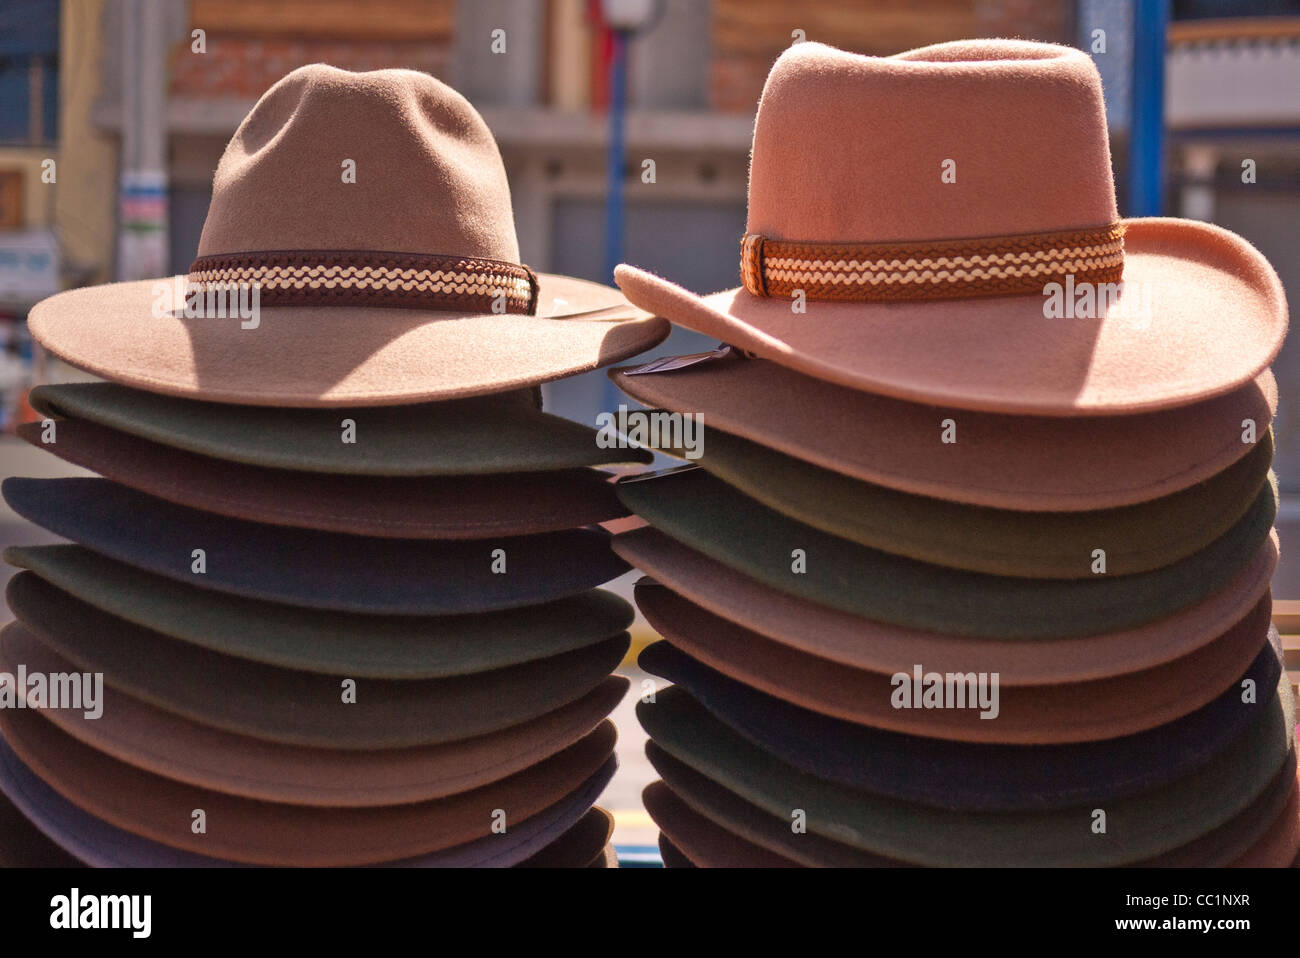 3096e0ca04835f Two stacks of authentic cowboy hats on display, for sale, in the open air  market in Otavalo, Ecuador.